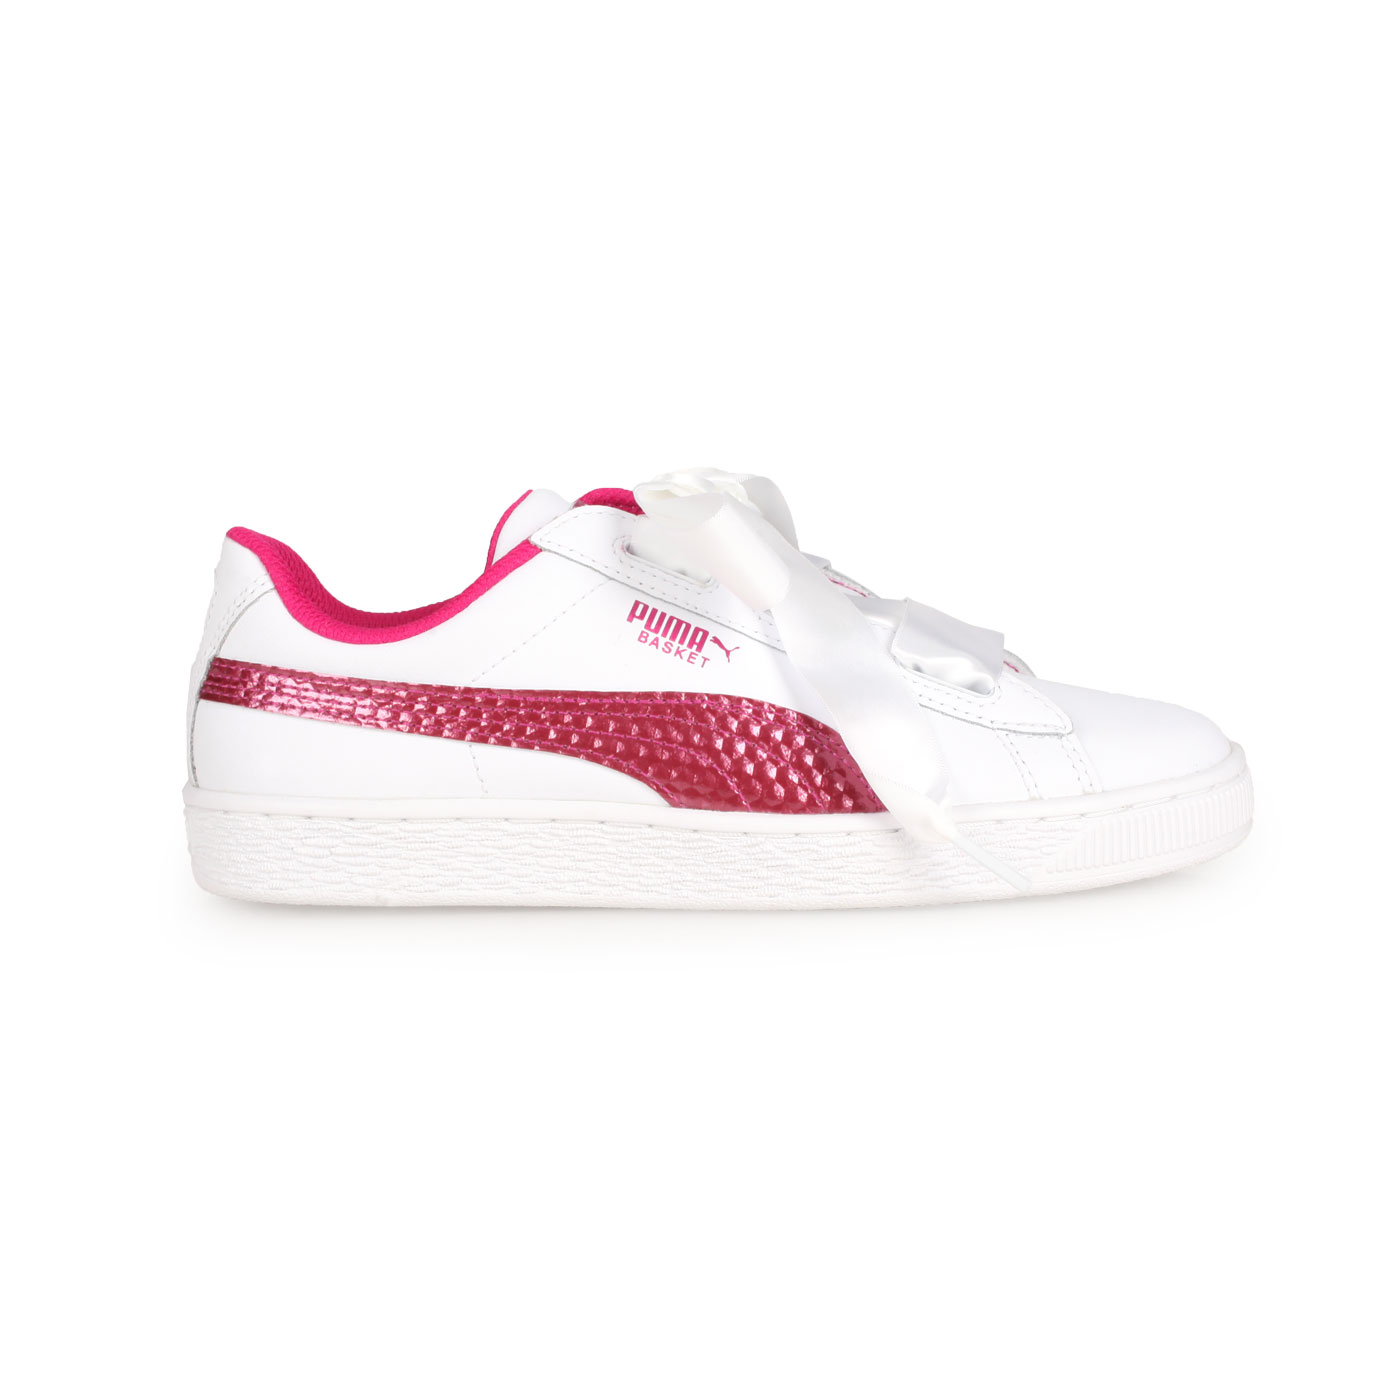 PUMA 大童休閒運動鞋  @Basket Heart Coated Glam Jr@36897401